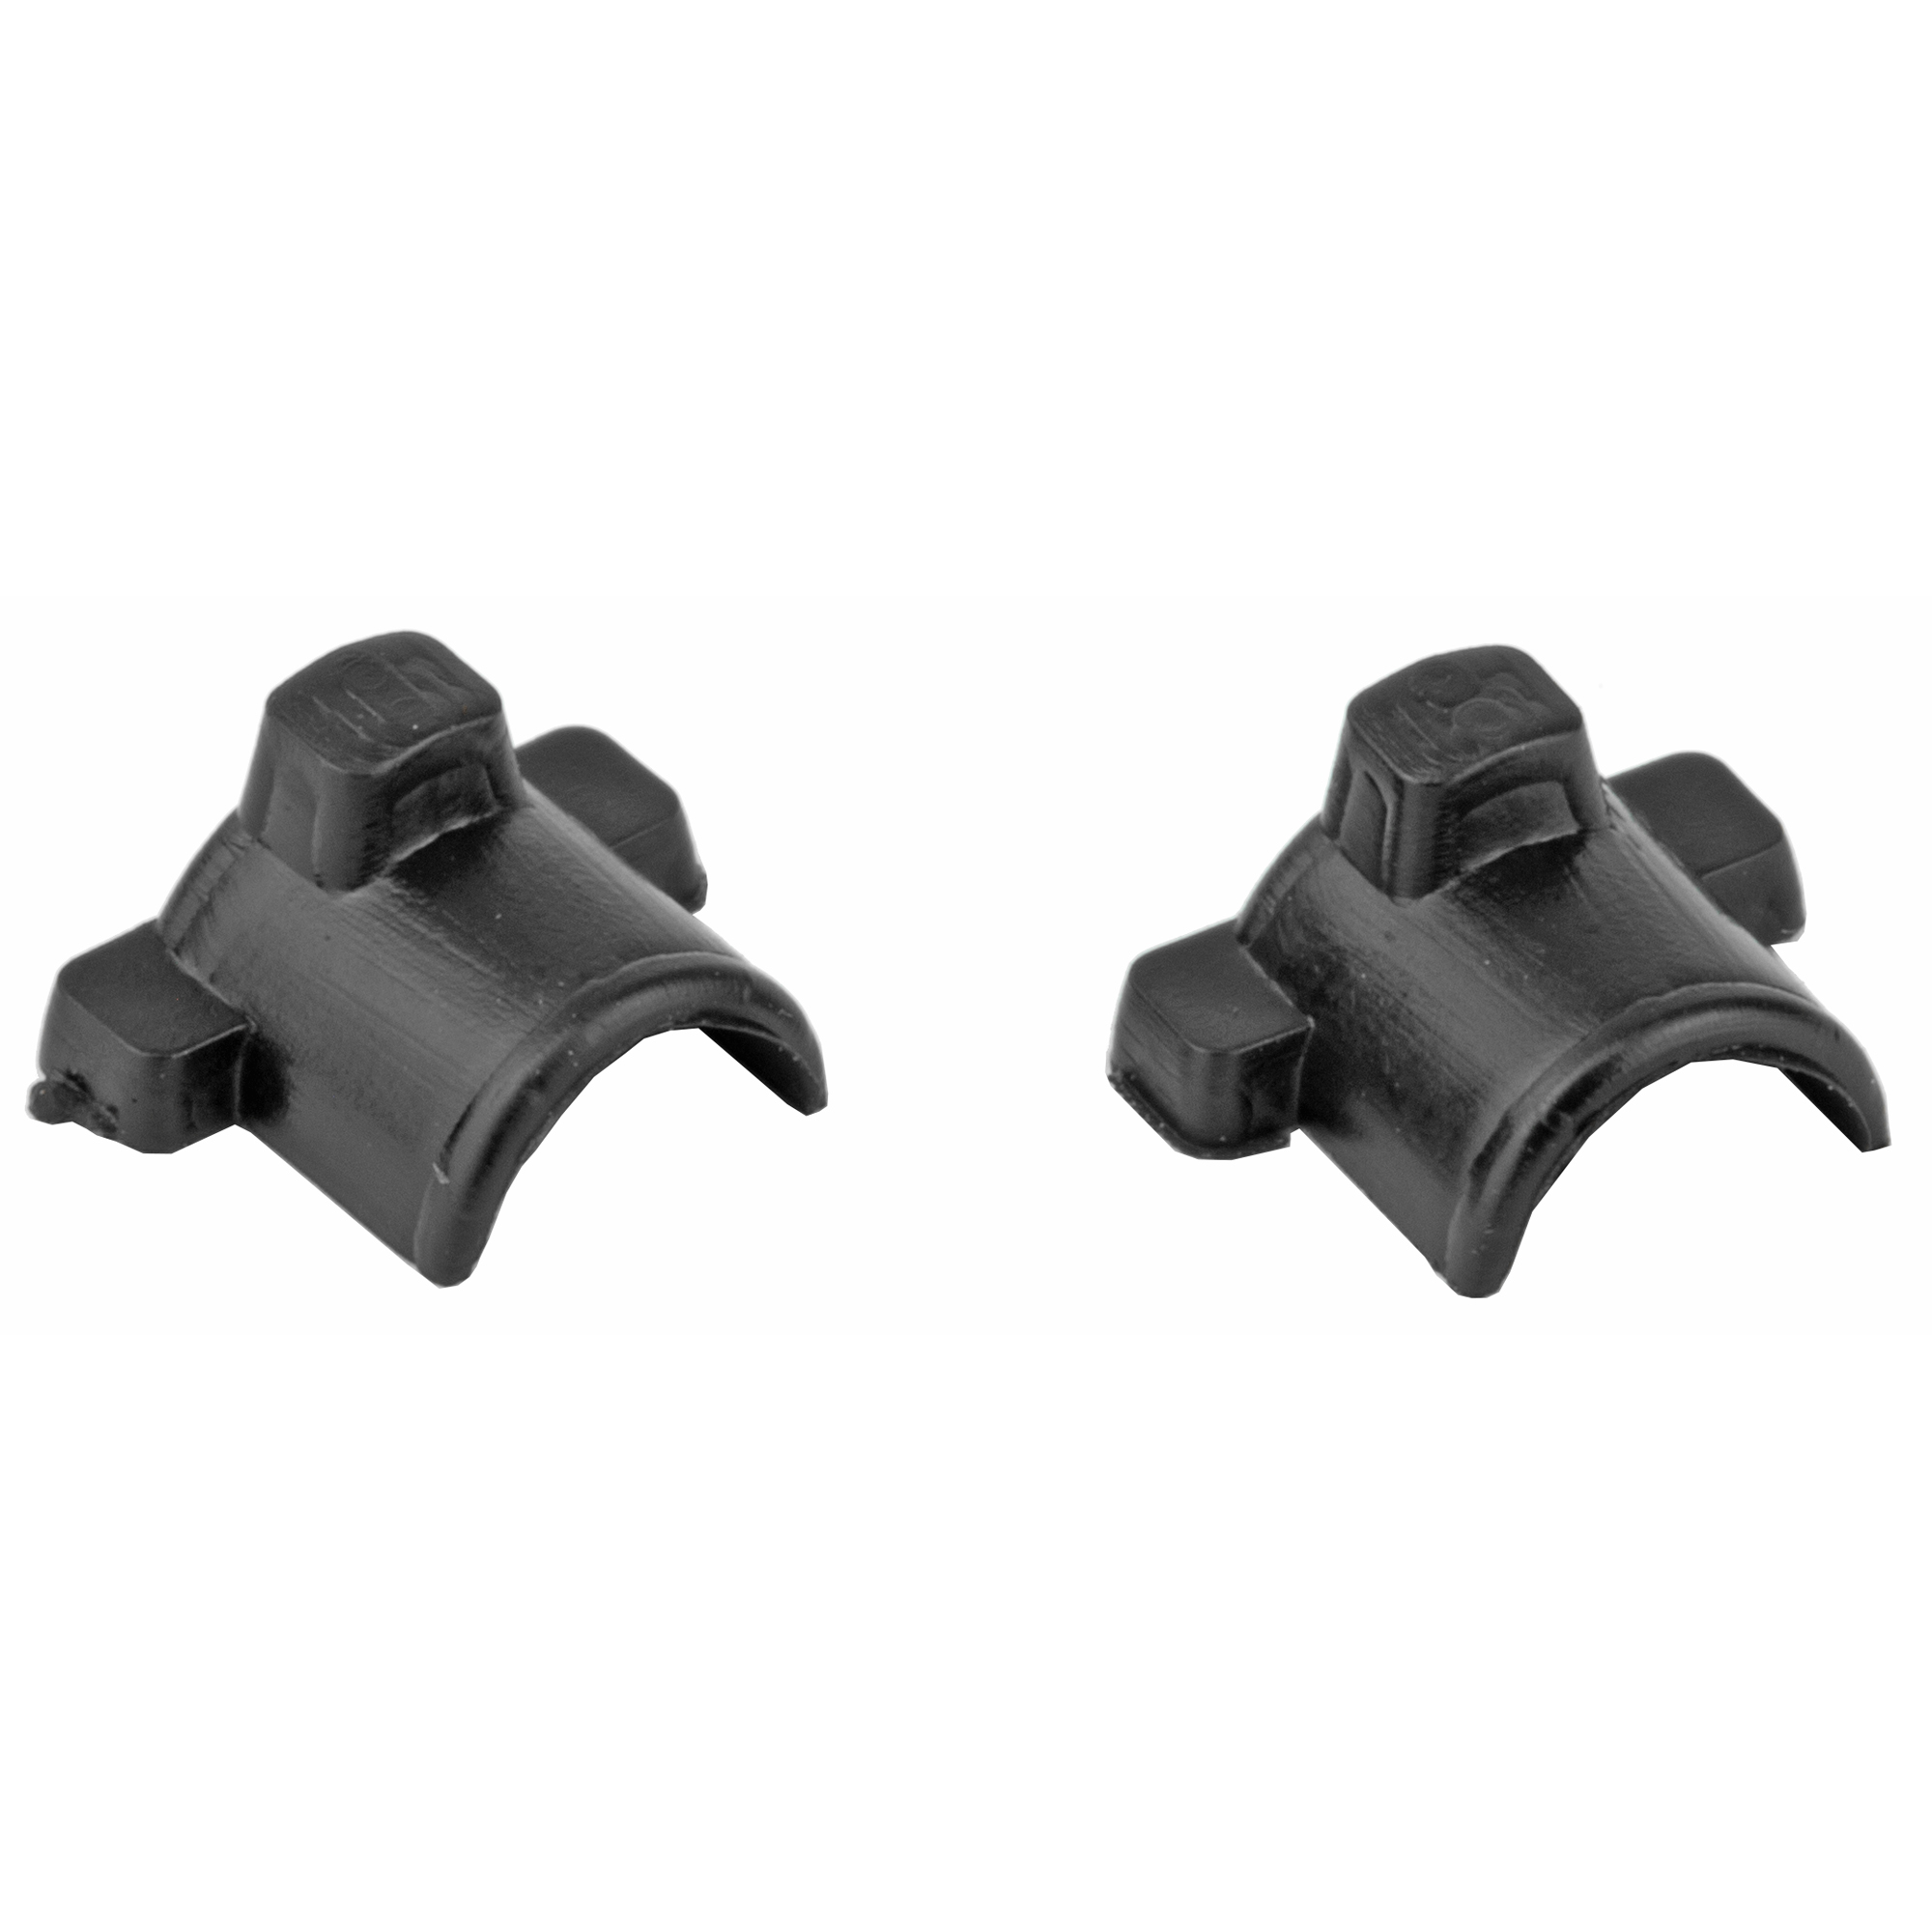 """The Ghost Maritime Spring Cups self clean the firing pin channel on live fire and ensure that even with water and debris inside your Glocks firing pin channel"""" your Glock pistol will fire!"""